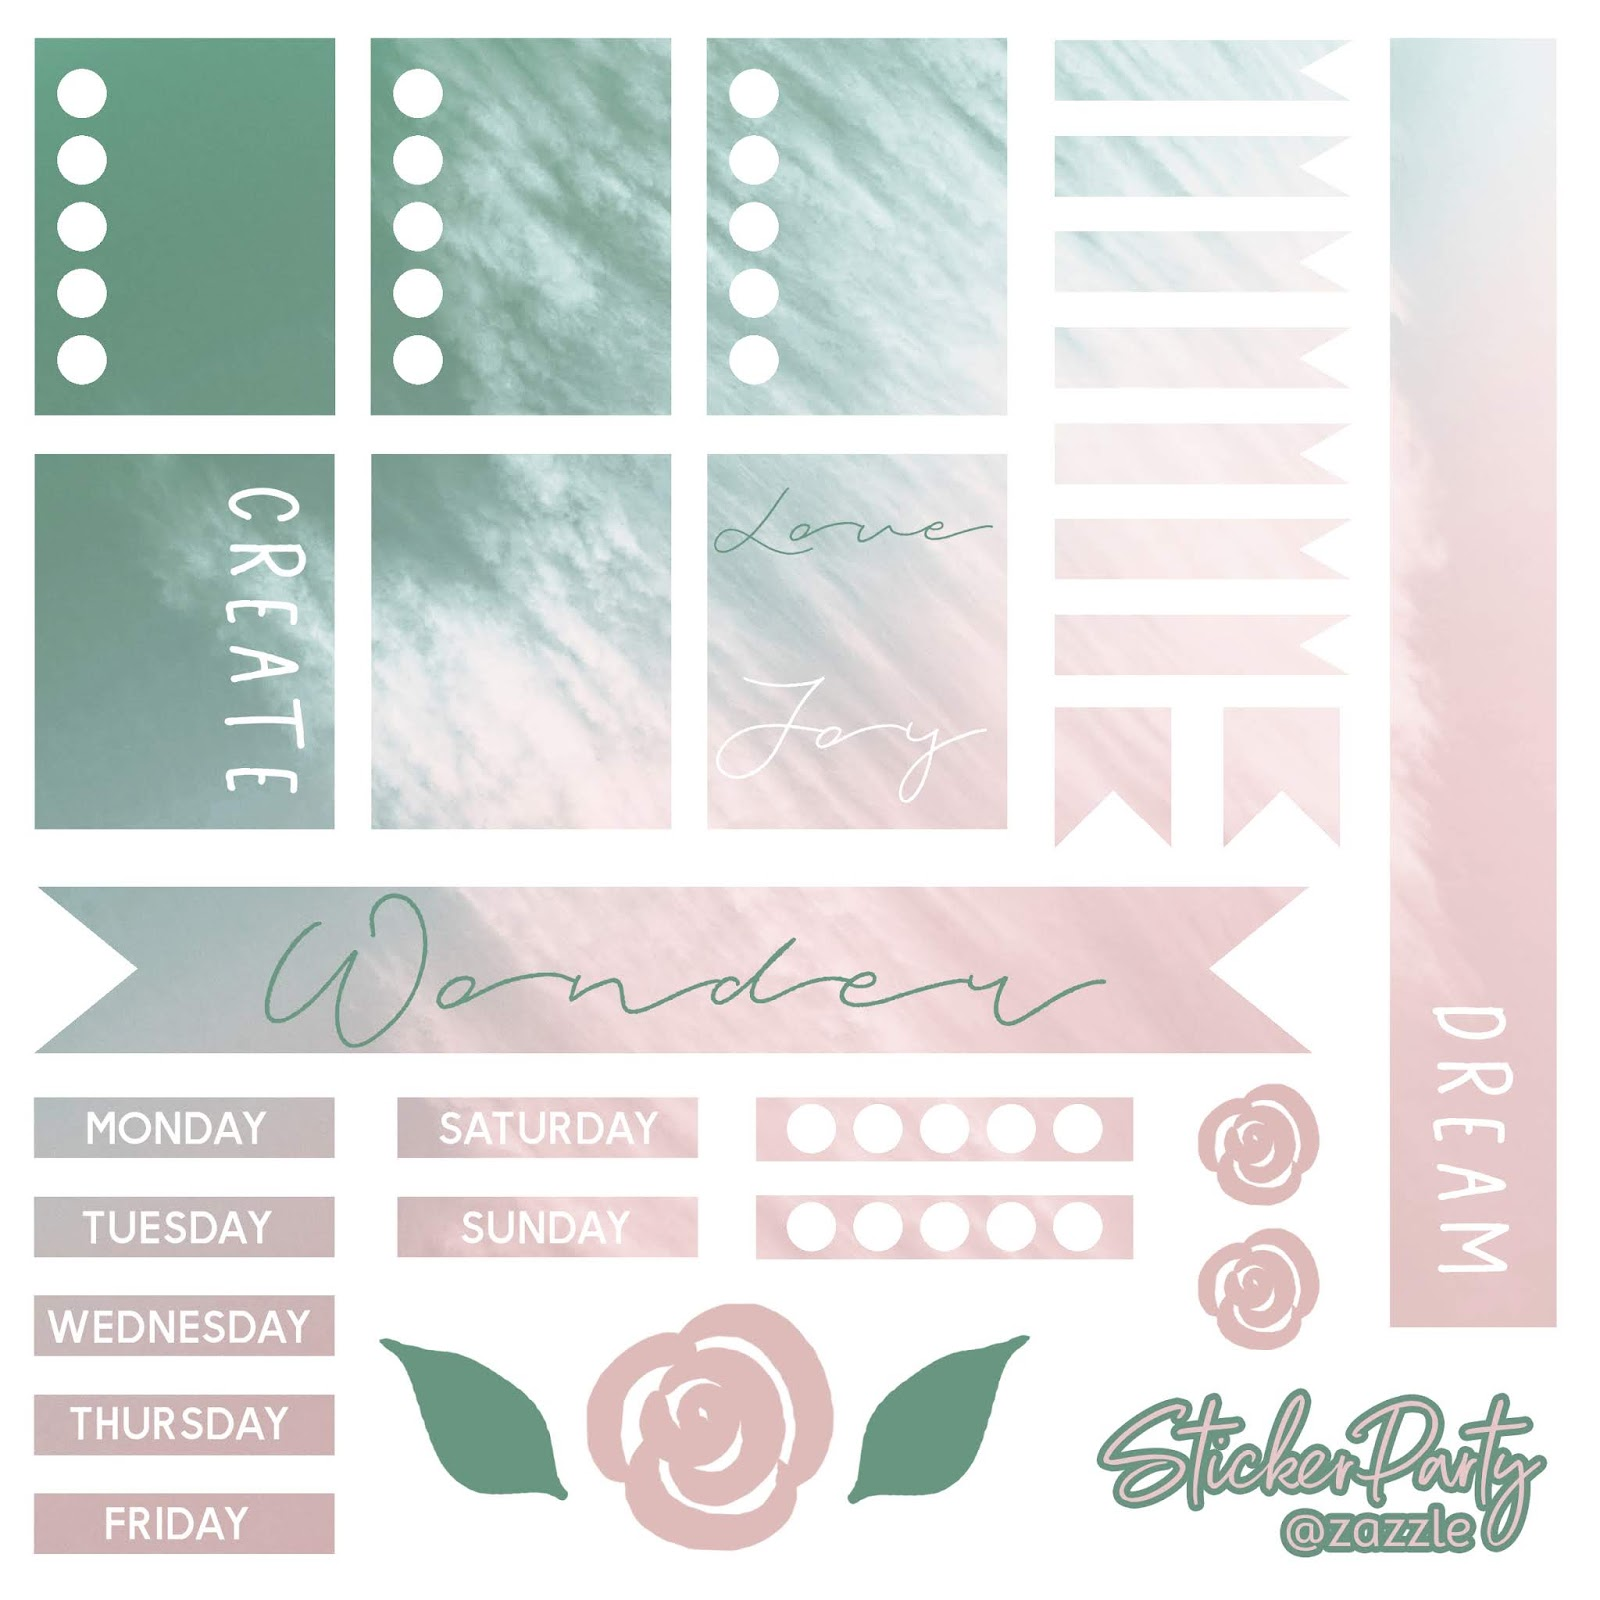 Free digital download - create dream joy love planner sticker sheet. With word art, days of the week, flags, banners, checklists, boxes, and more. In a pink, teal green, blush color palette.